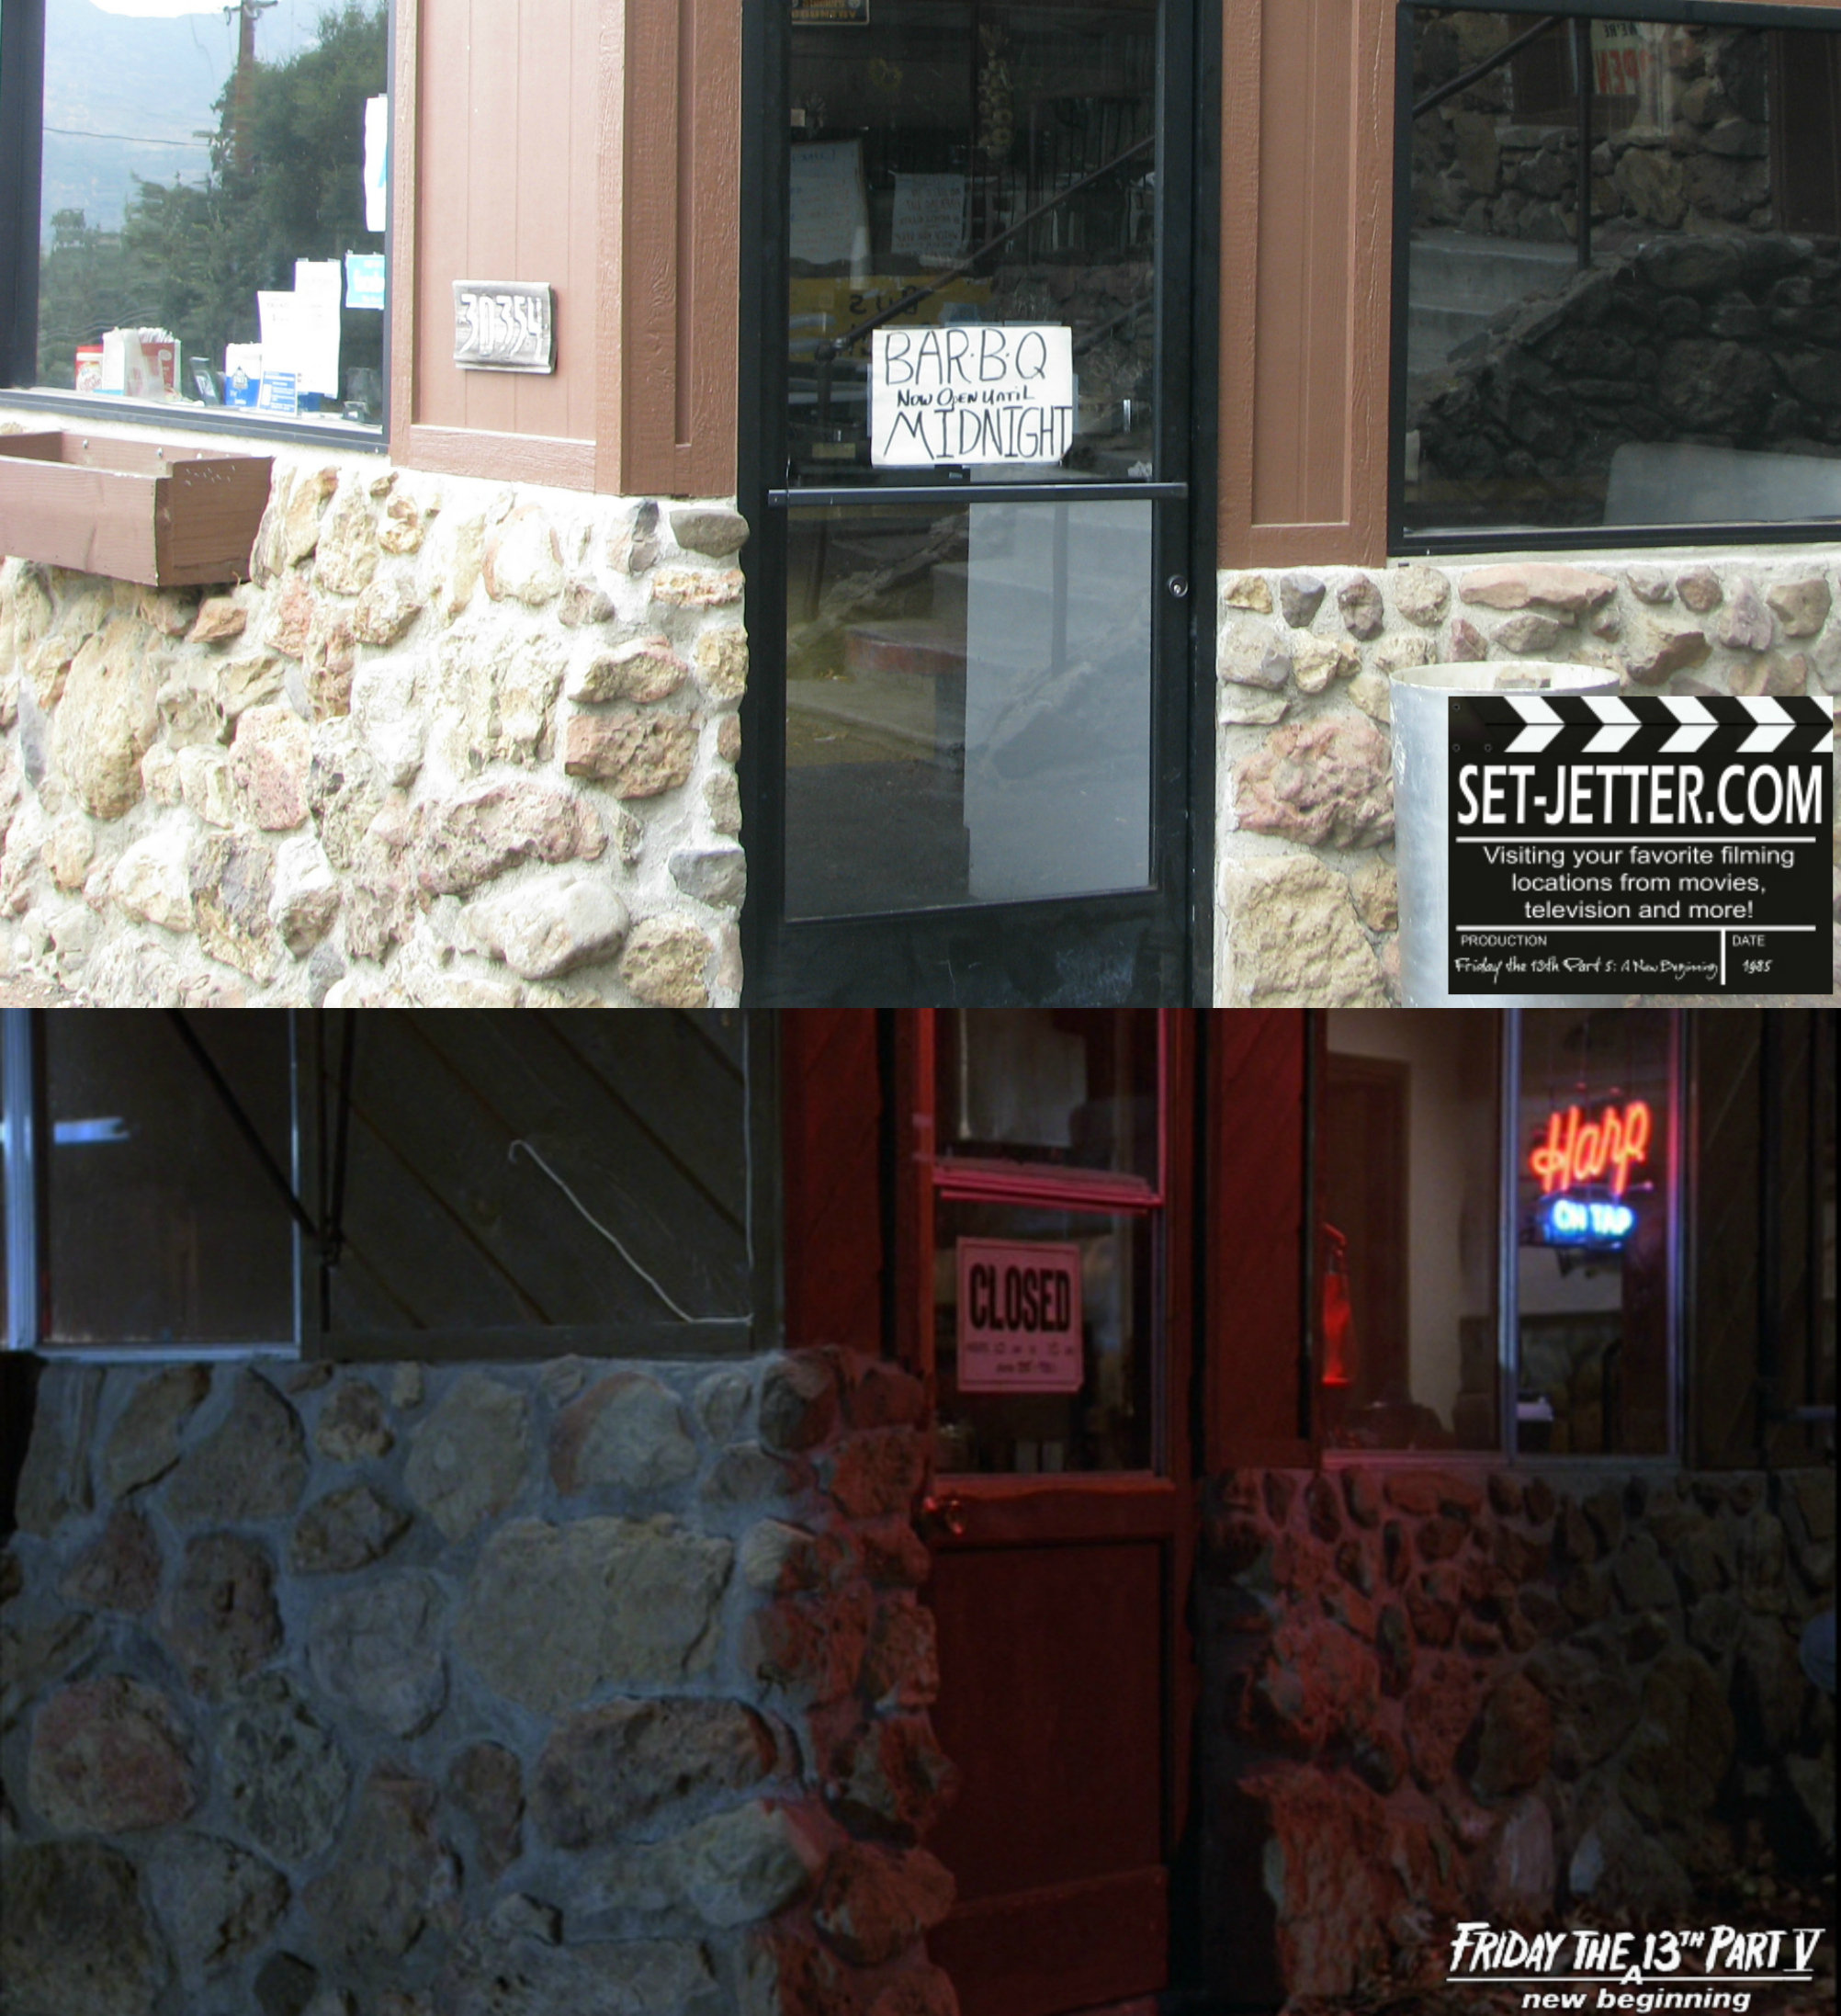 Friday the 13th Part V comparison 04.jpg